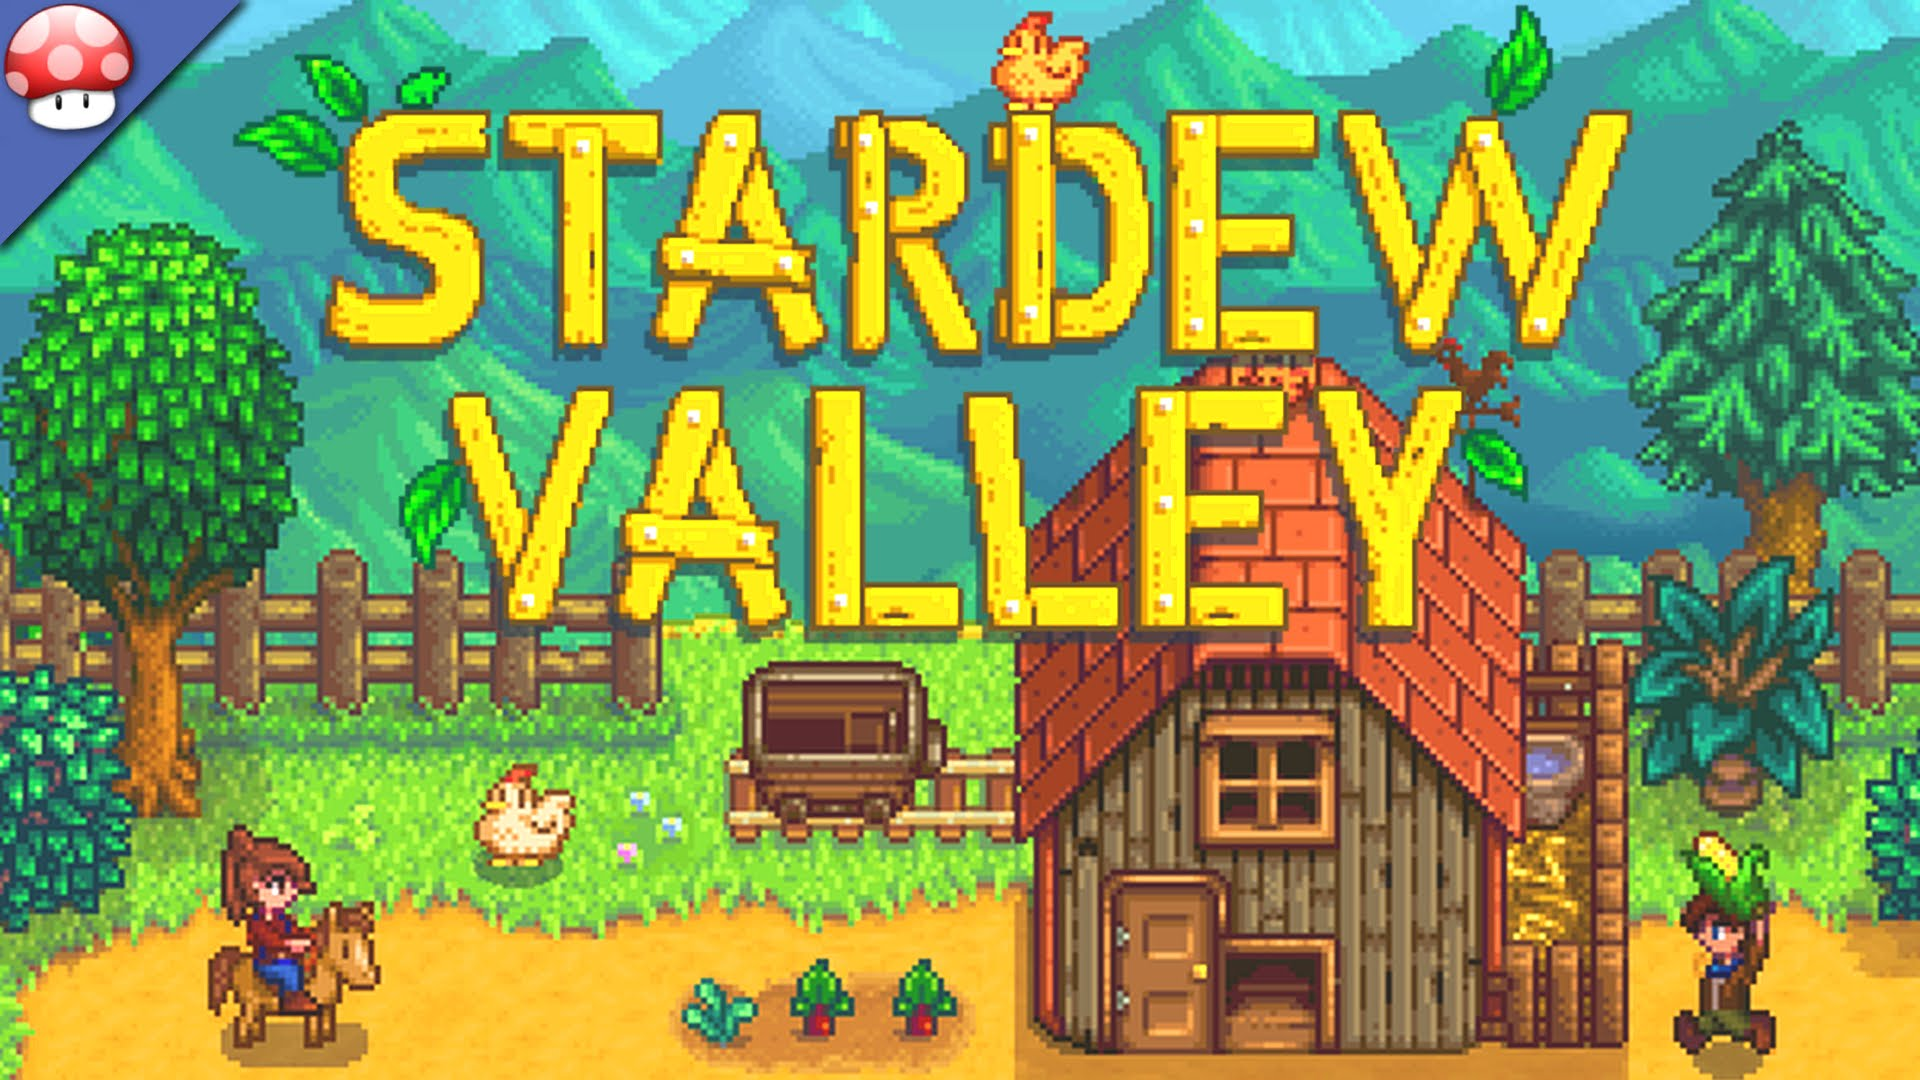 9 Stardew Valley Hd Wallpapers  Backgrounds  Wallpaper Abyss